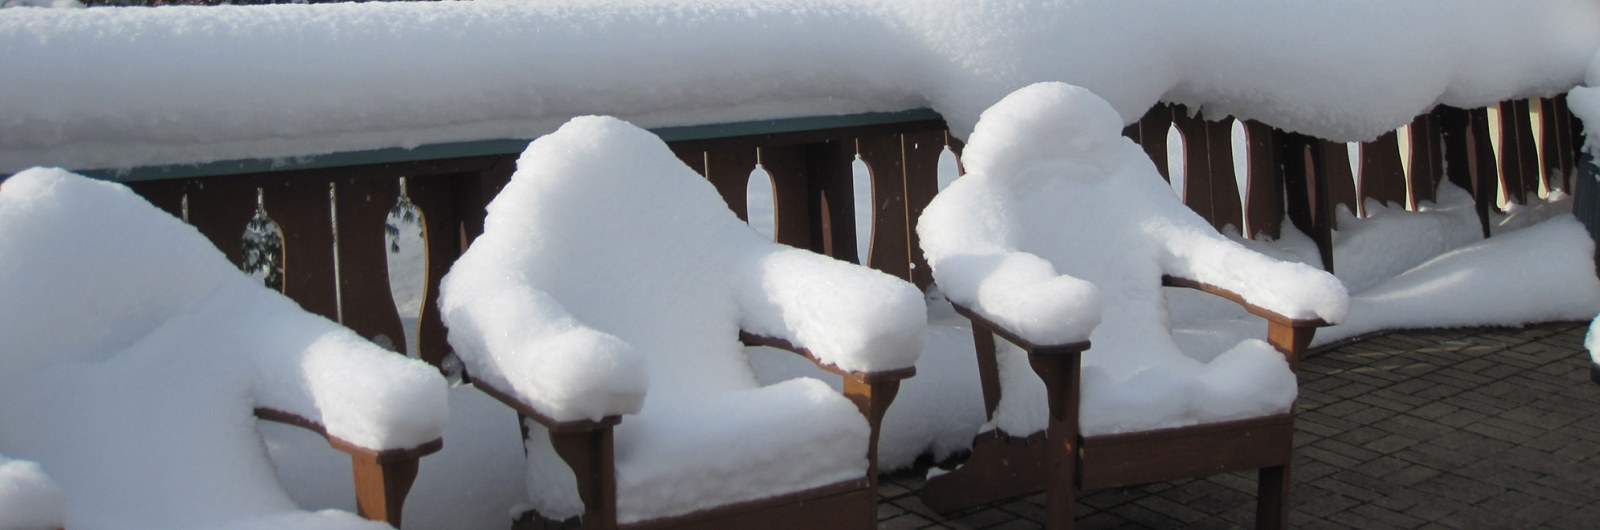 Chairs on deck covered in fresh snow